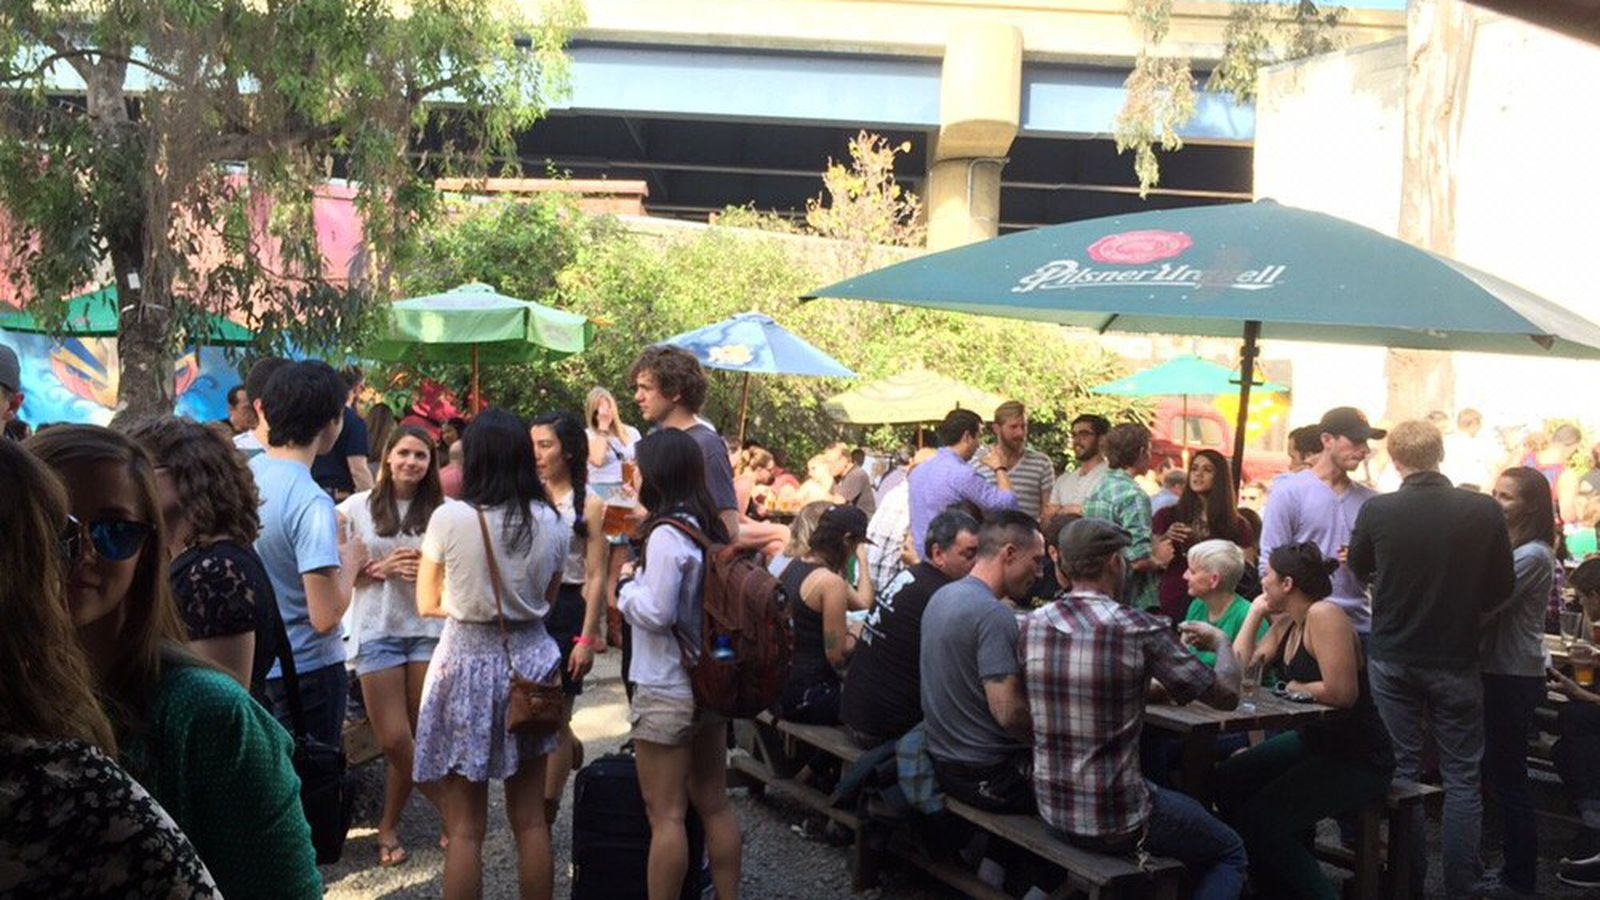 Zeitgeist Protects Its Patio, Trader Joe's Sets Opening